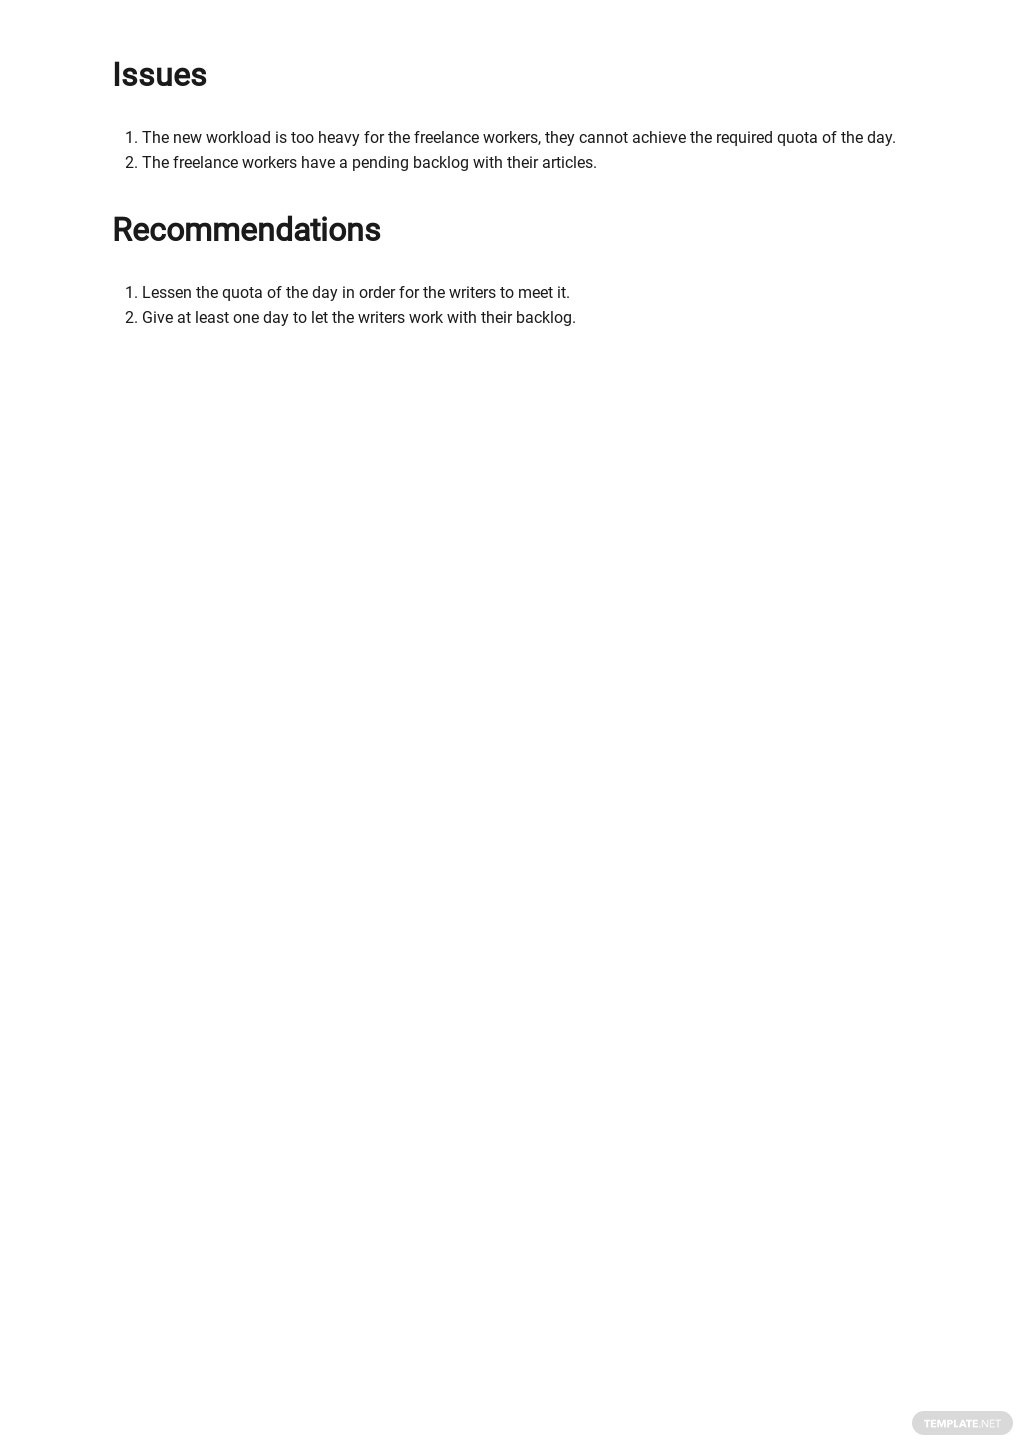 Daily Freelance Work Report Template 2.jpe